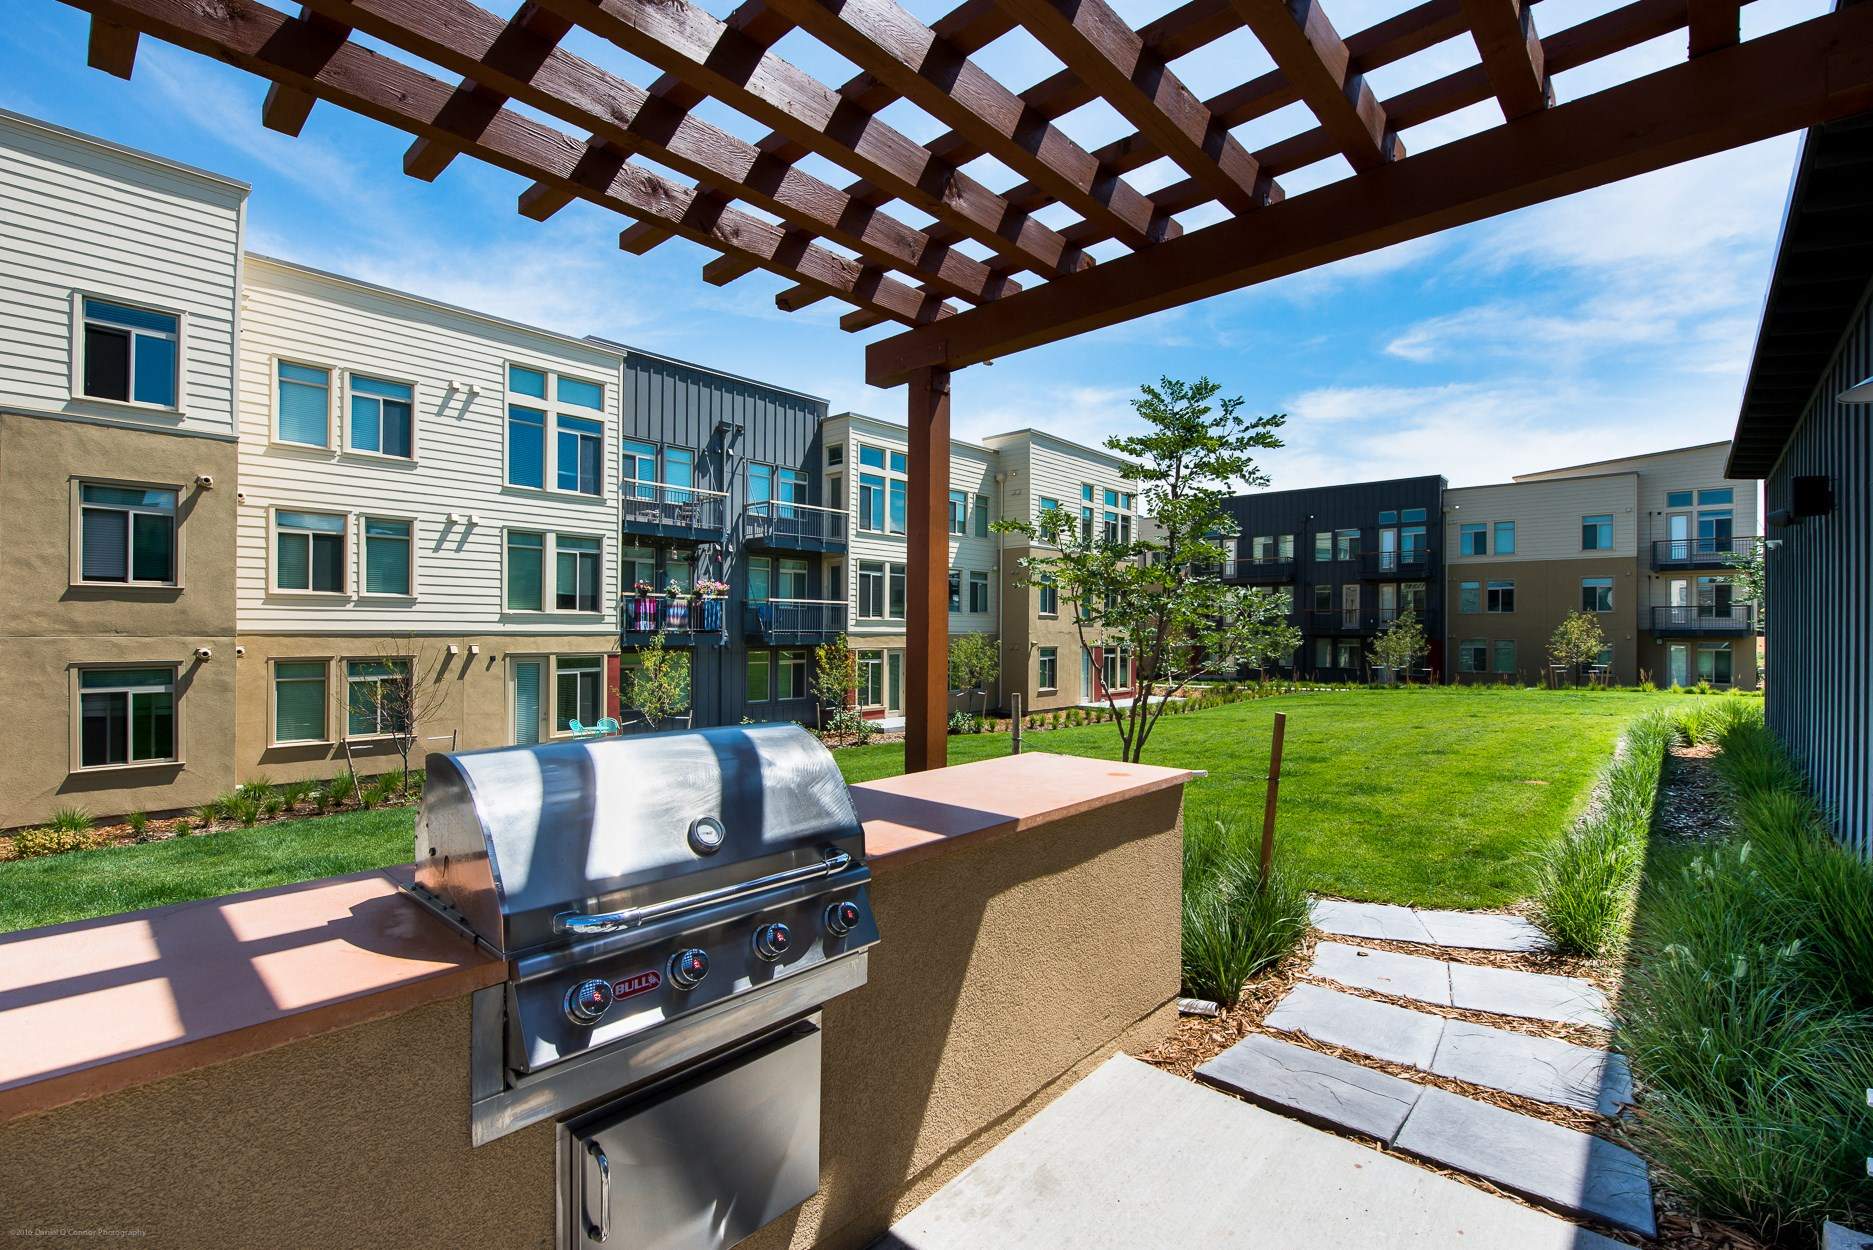 Grill at 8000 Uptown Apartments in Broomfield, CO